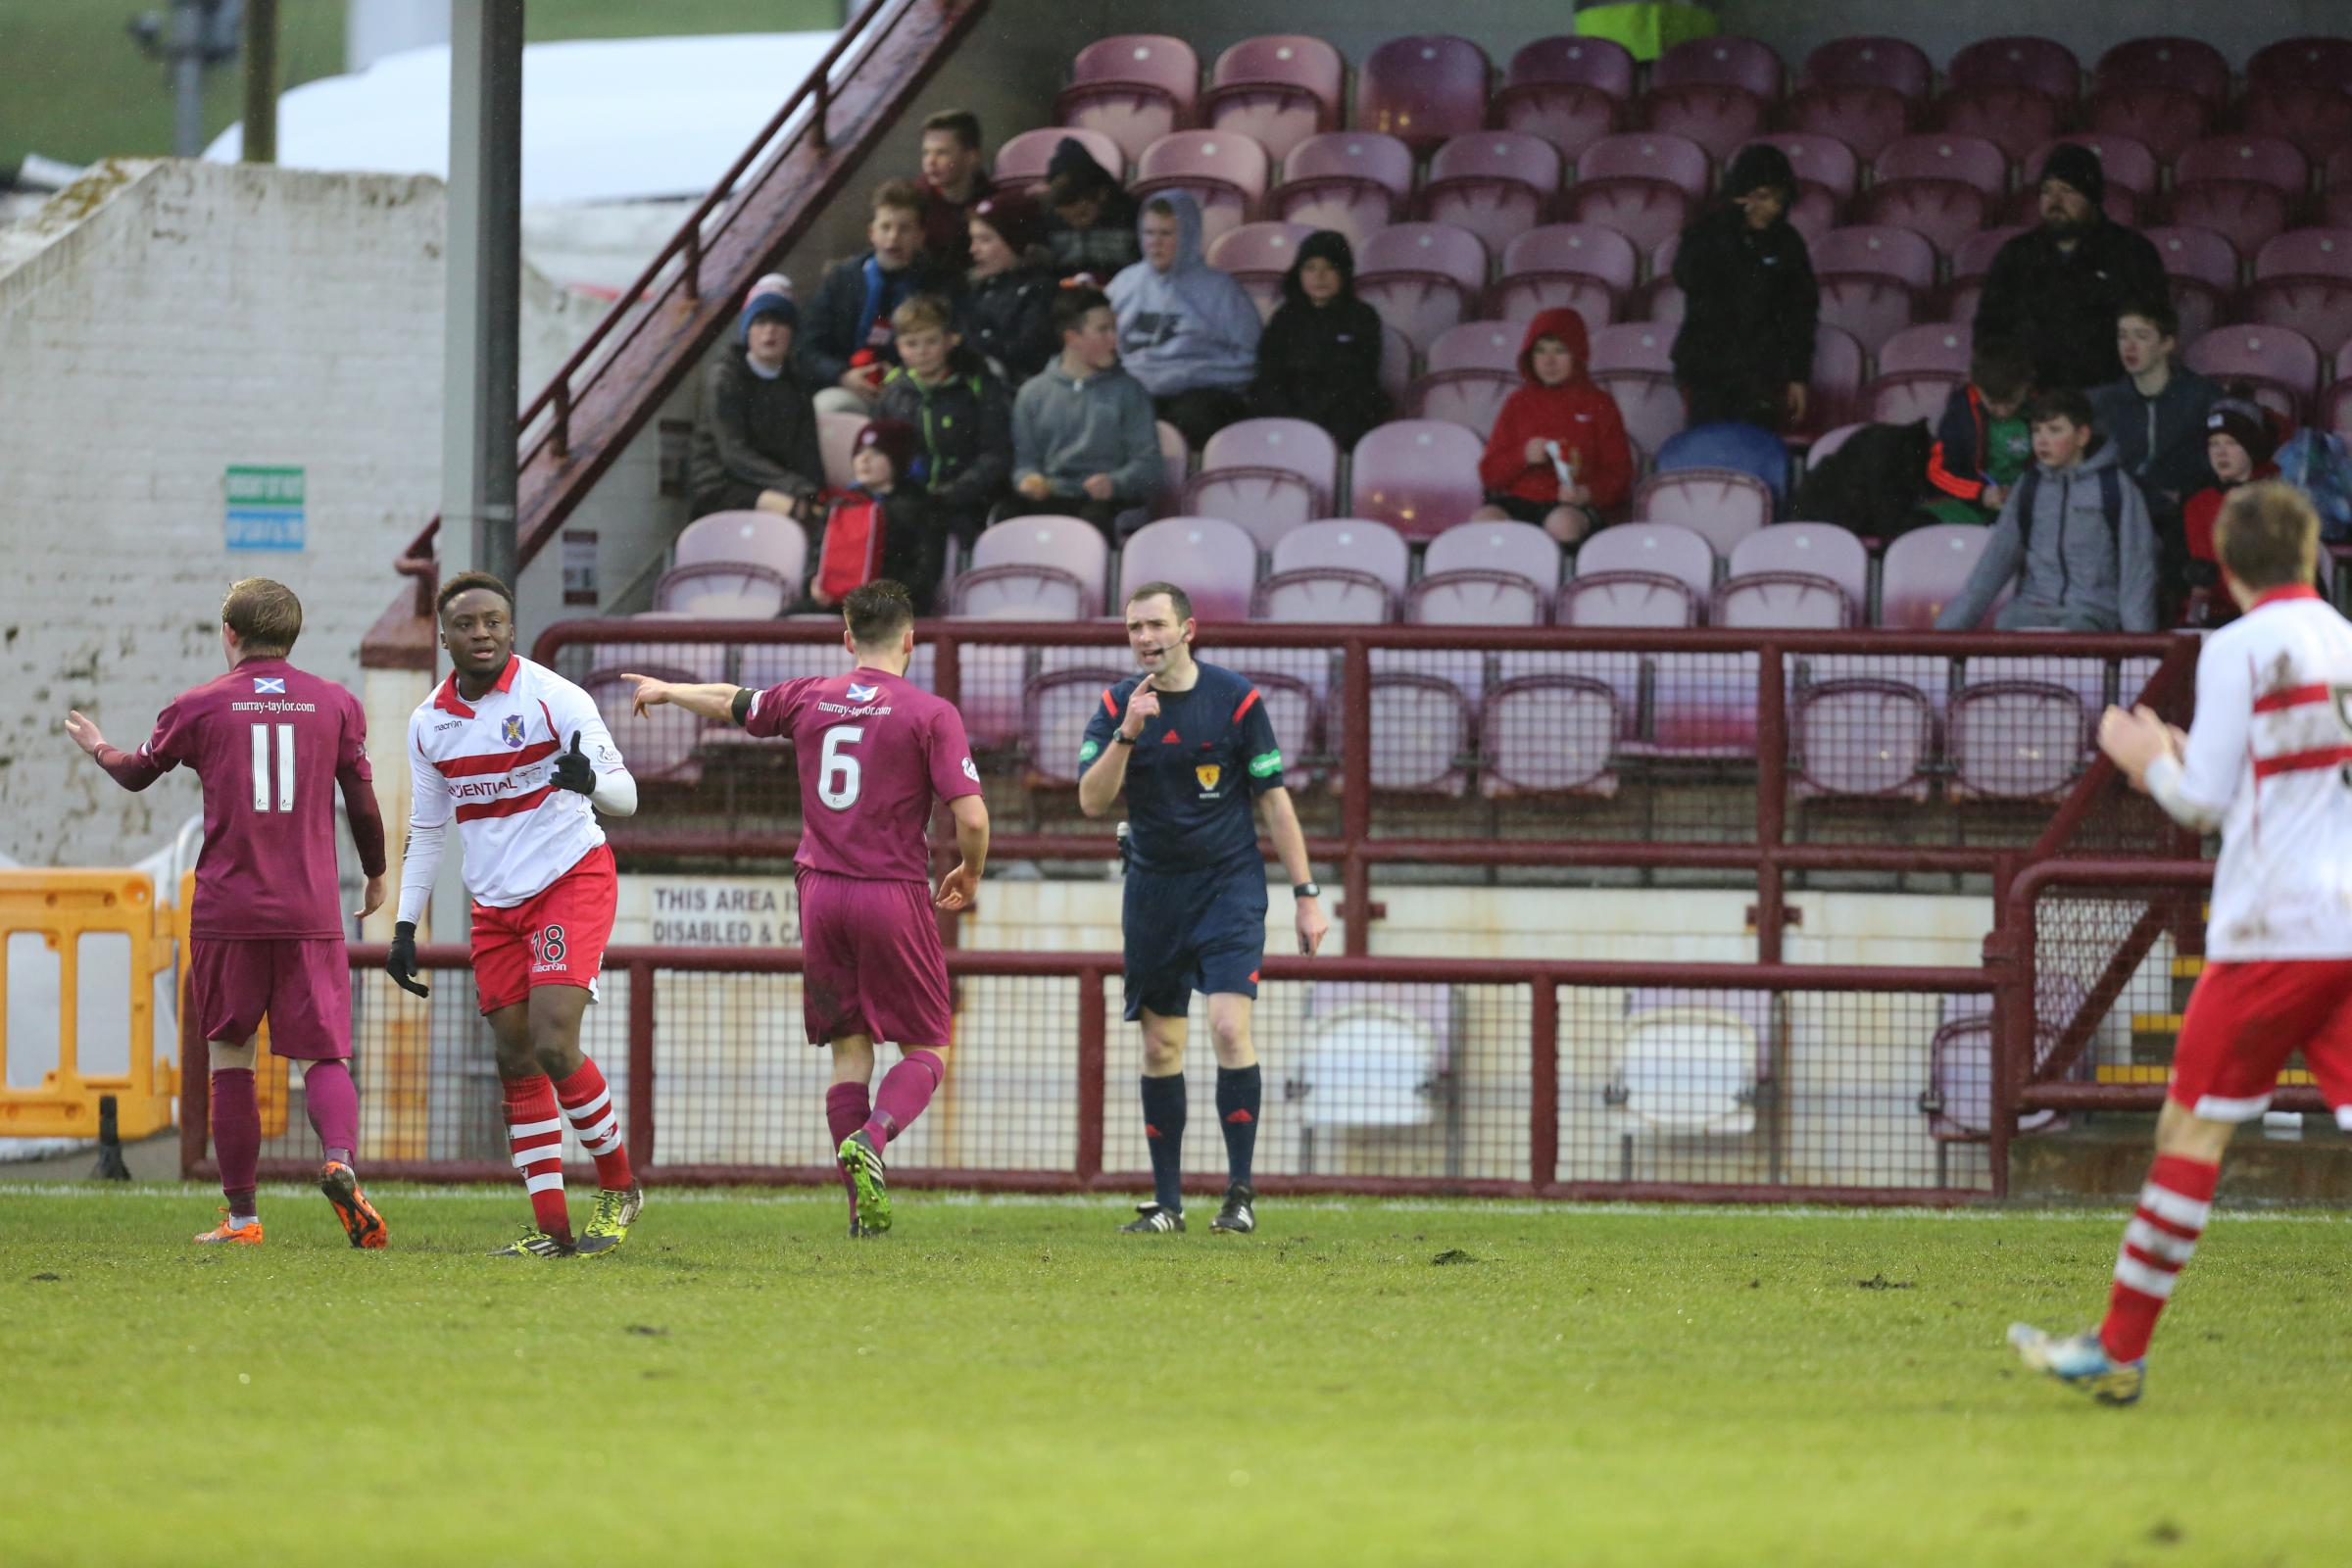 Stirling goalscorer Moses Olanrewaju in action against Arbroath earlier this season.